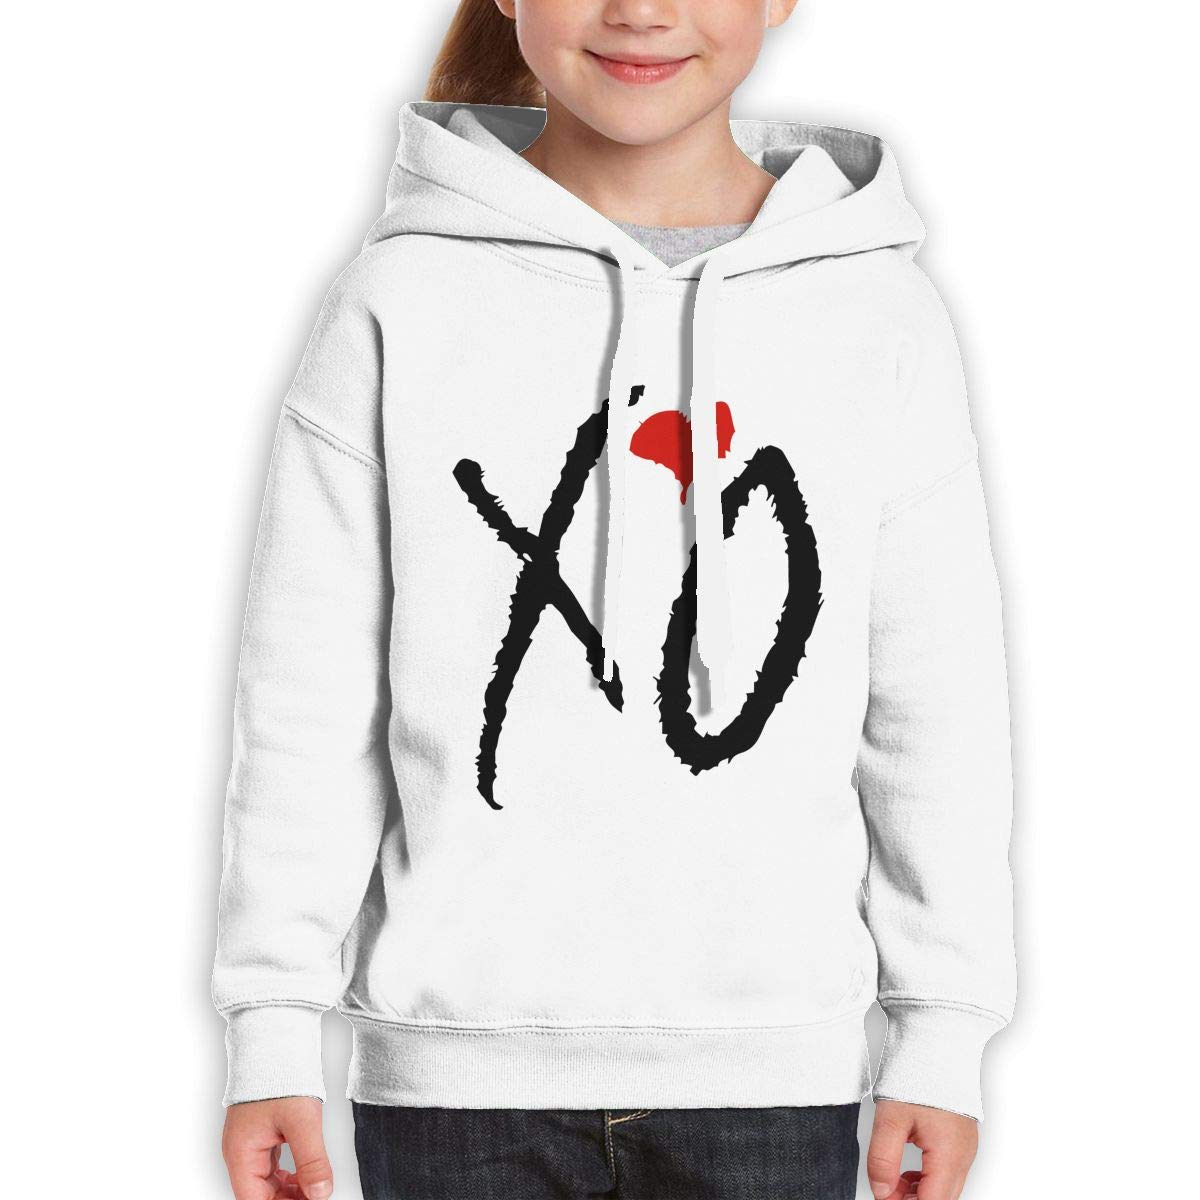 MUPTQWIU Youth Black XO Love Casual Style Travel White Hoody